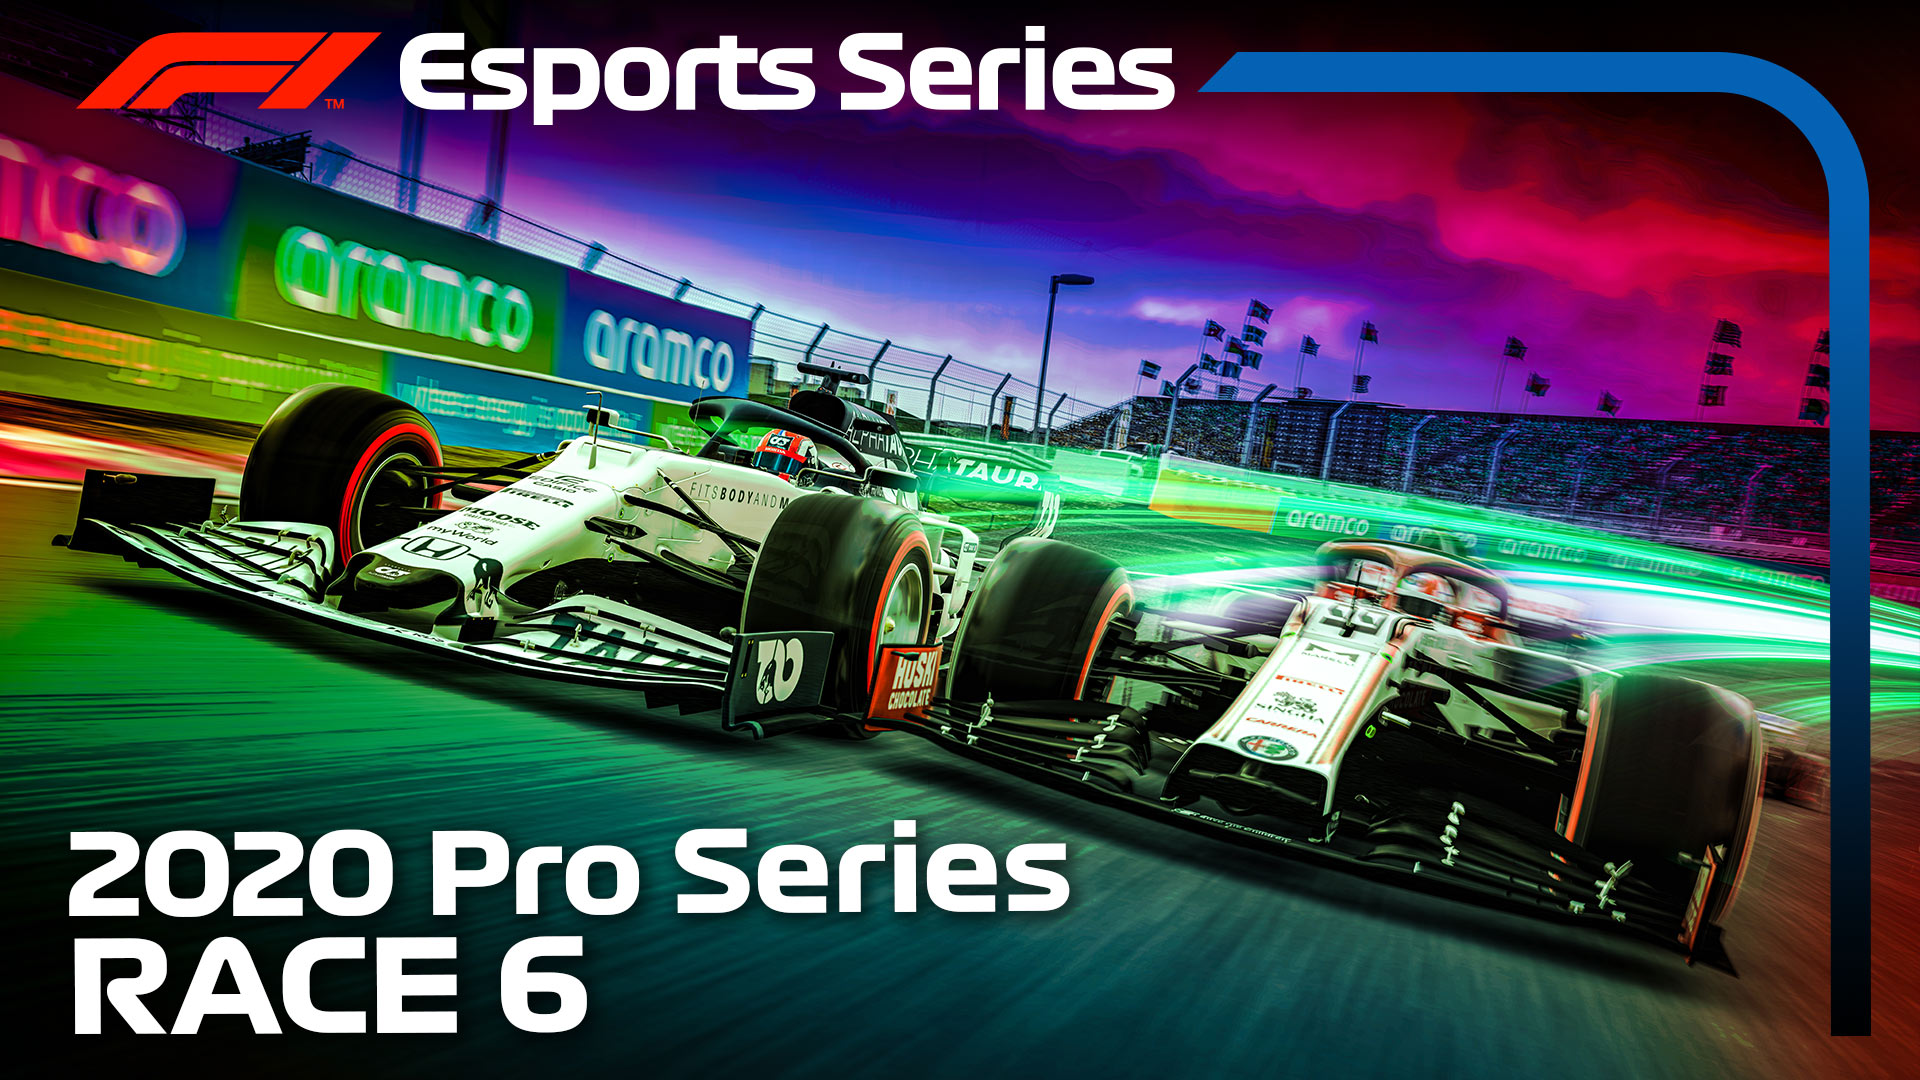 WATCH – F1 Esports Series, Race 6, presented by Aramco | Formula 1®